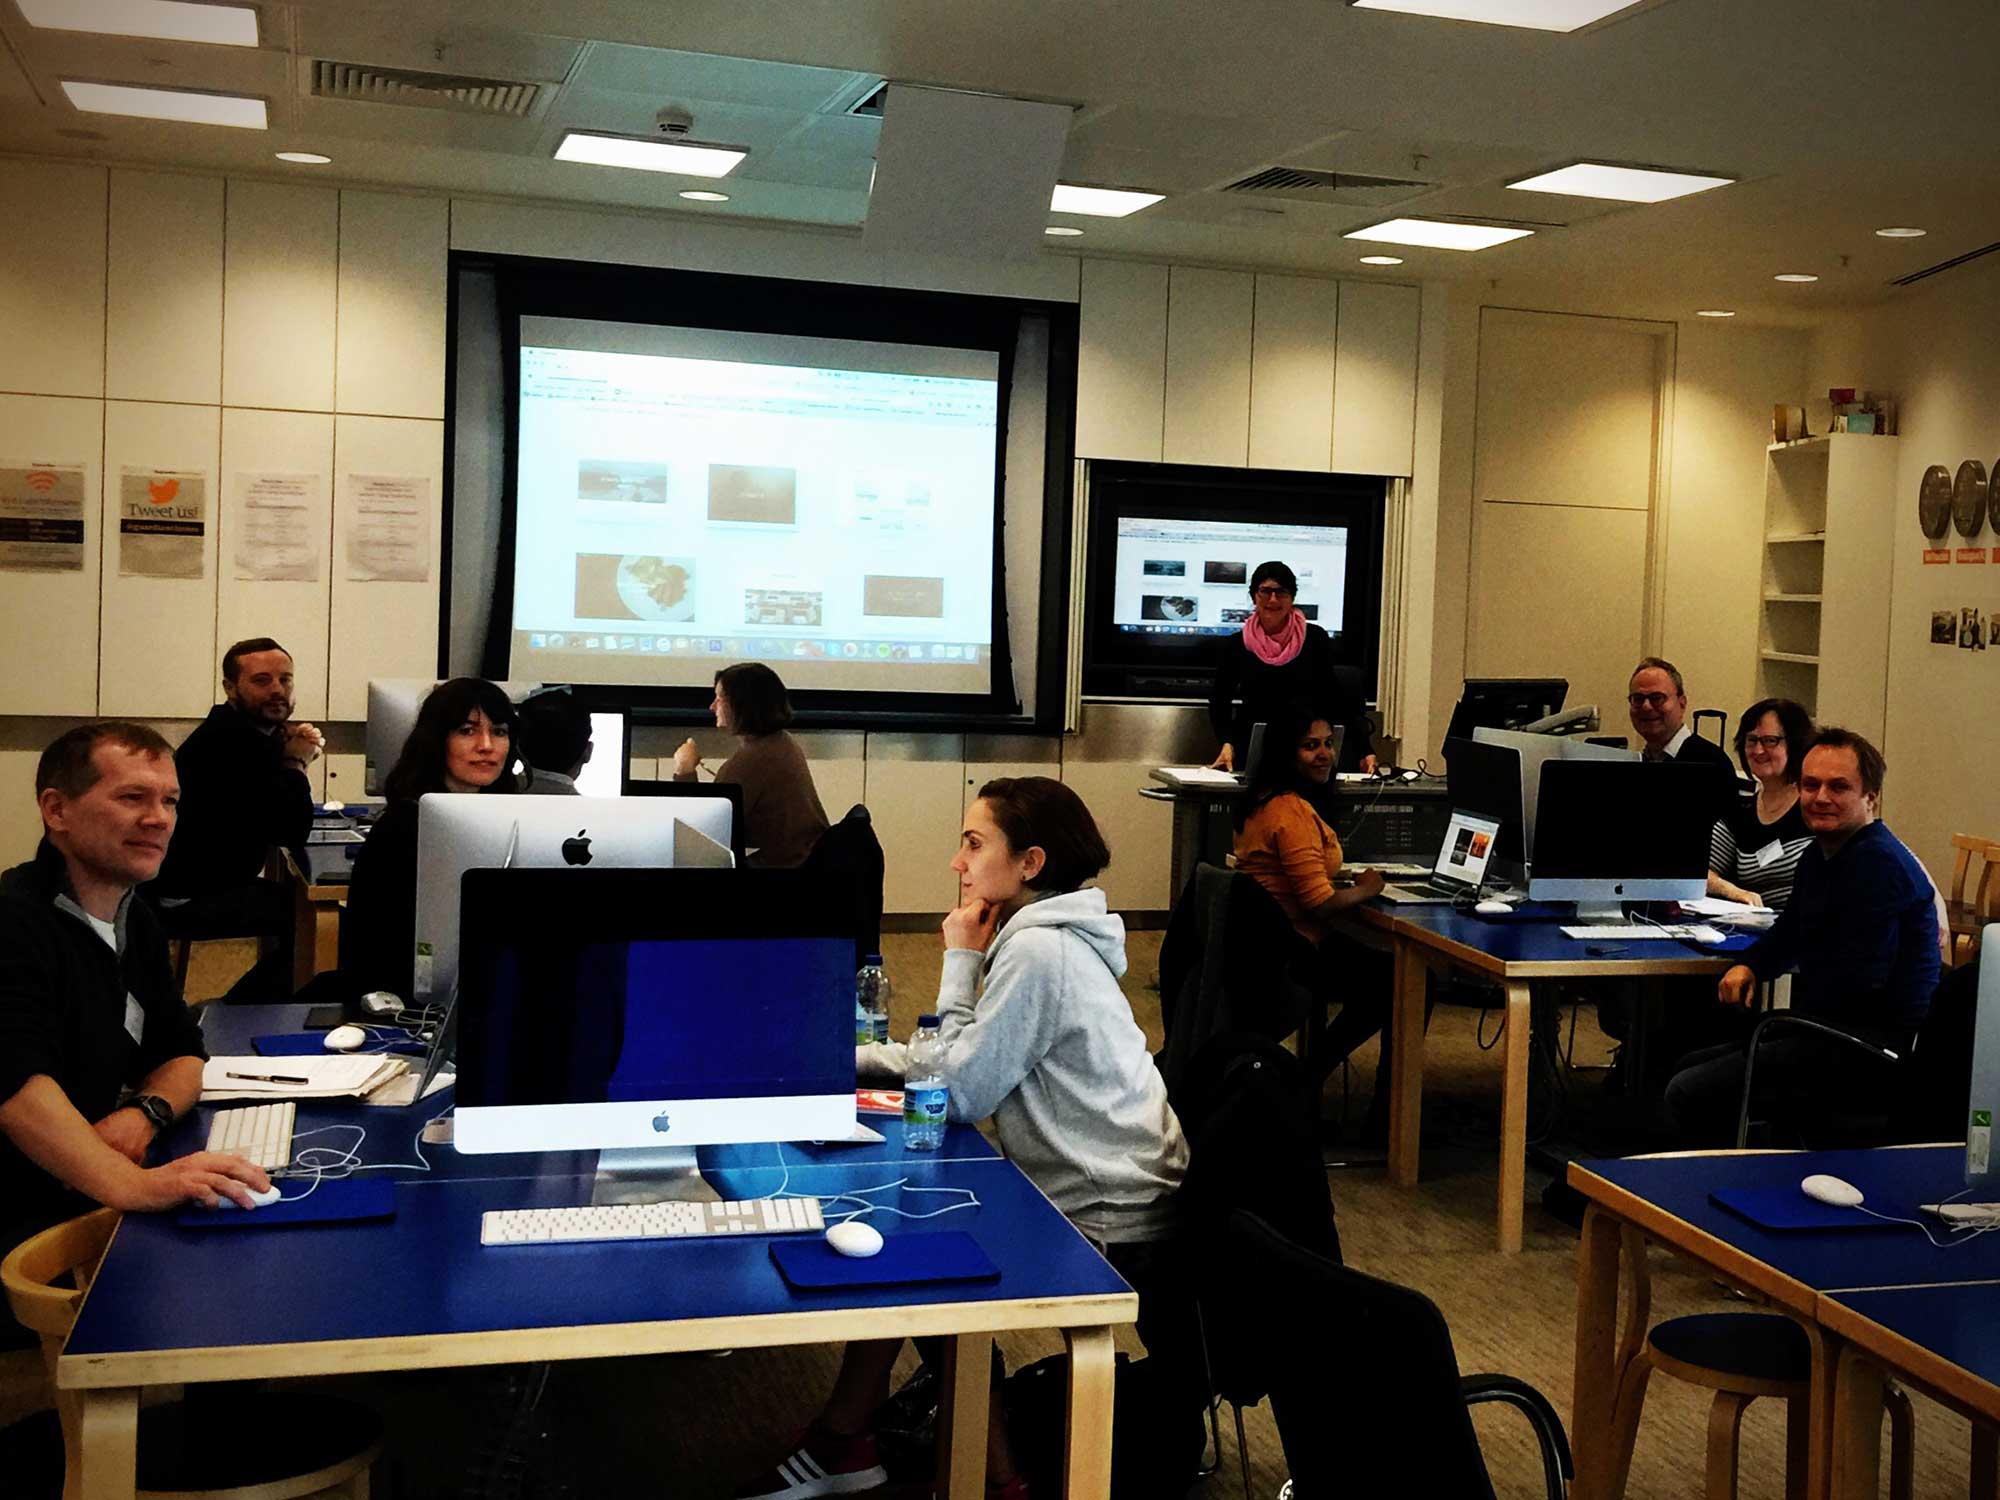 Guardian Masterclasses and Squarespace